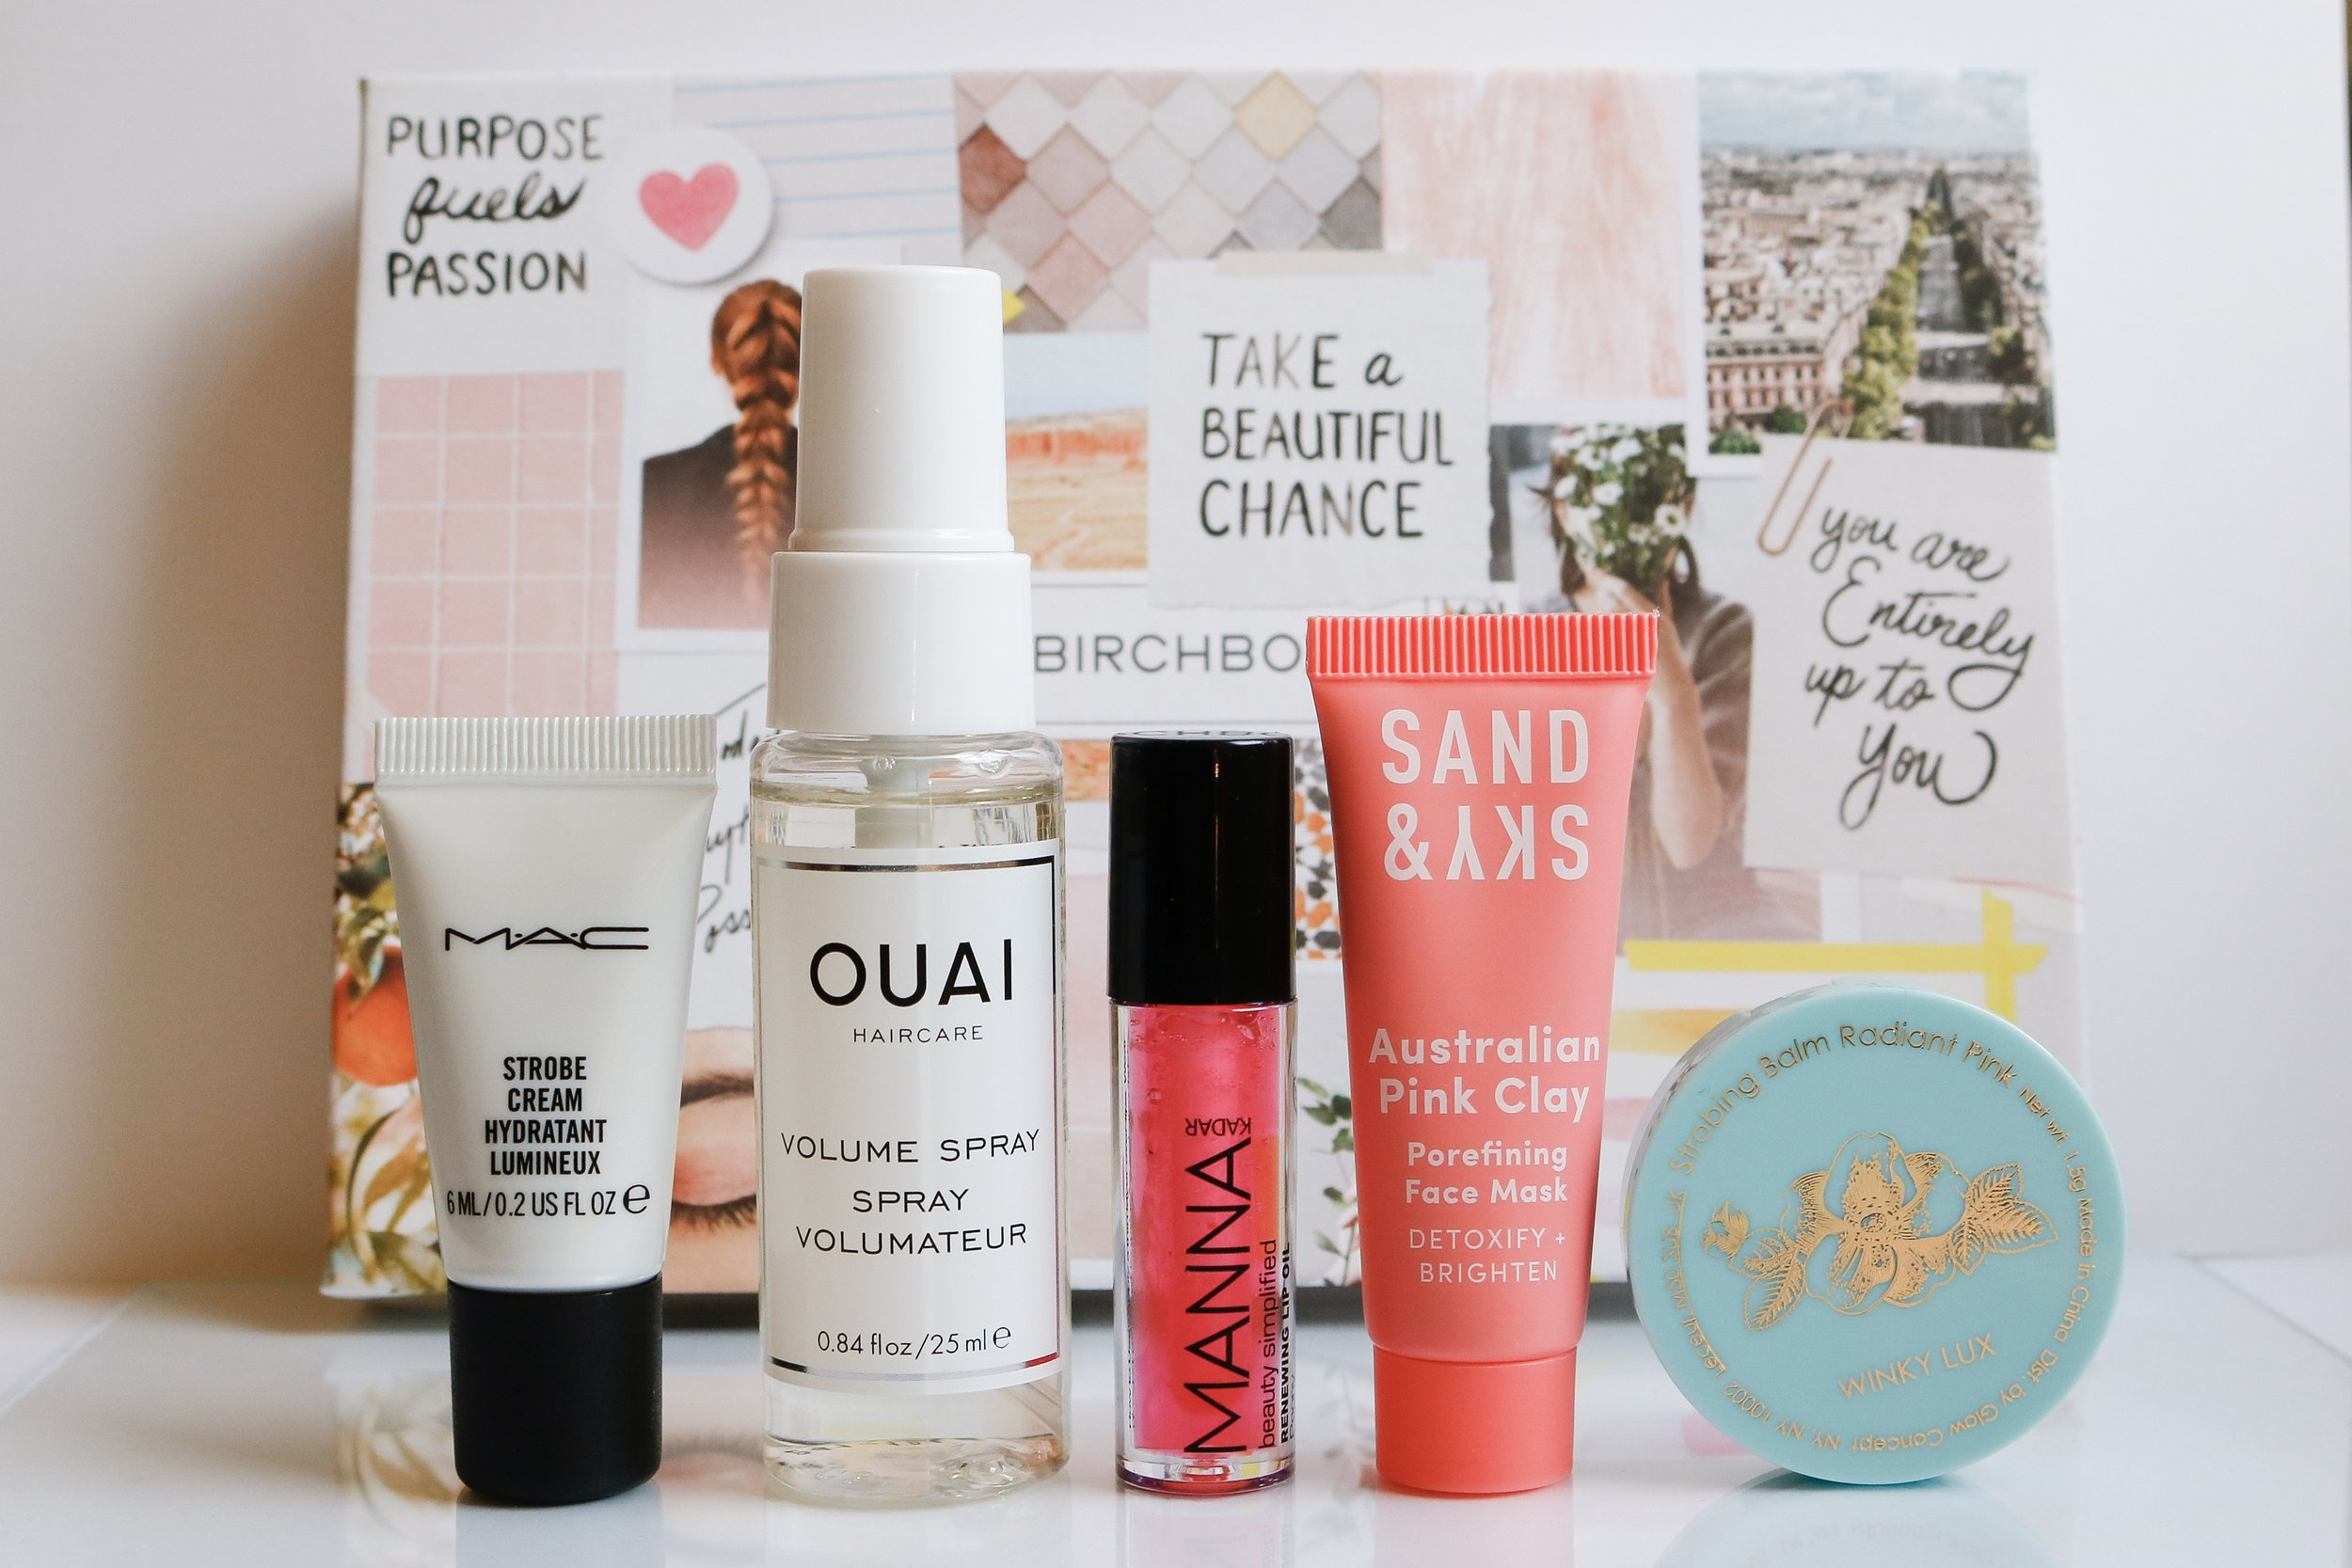 My January 2019 Birch Box